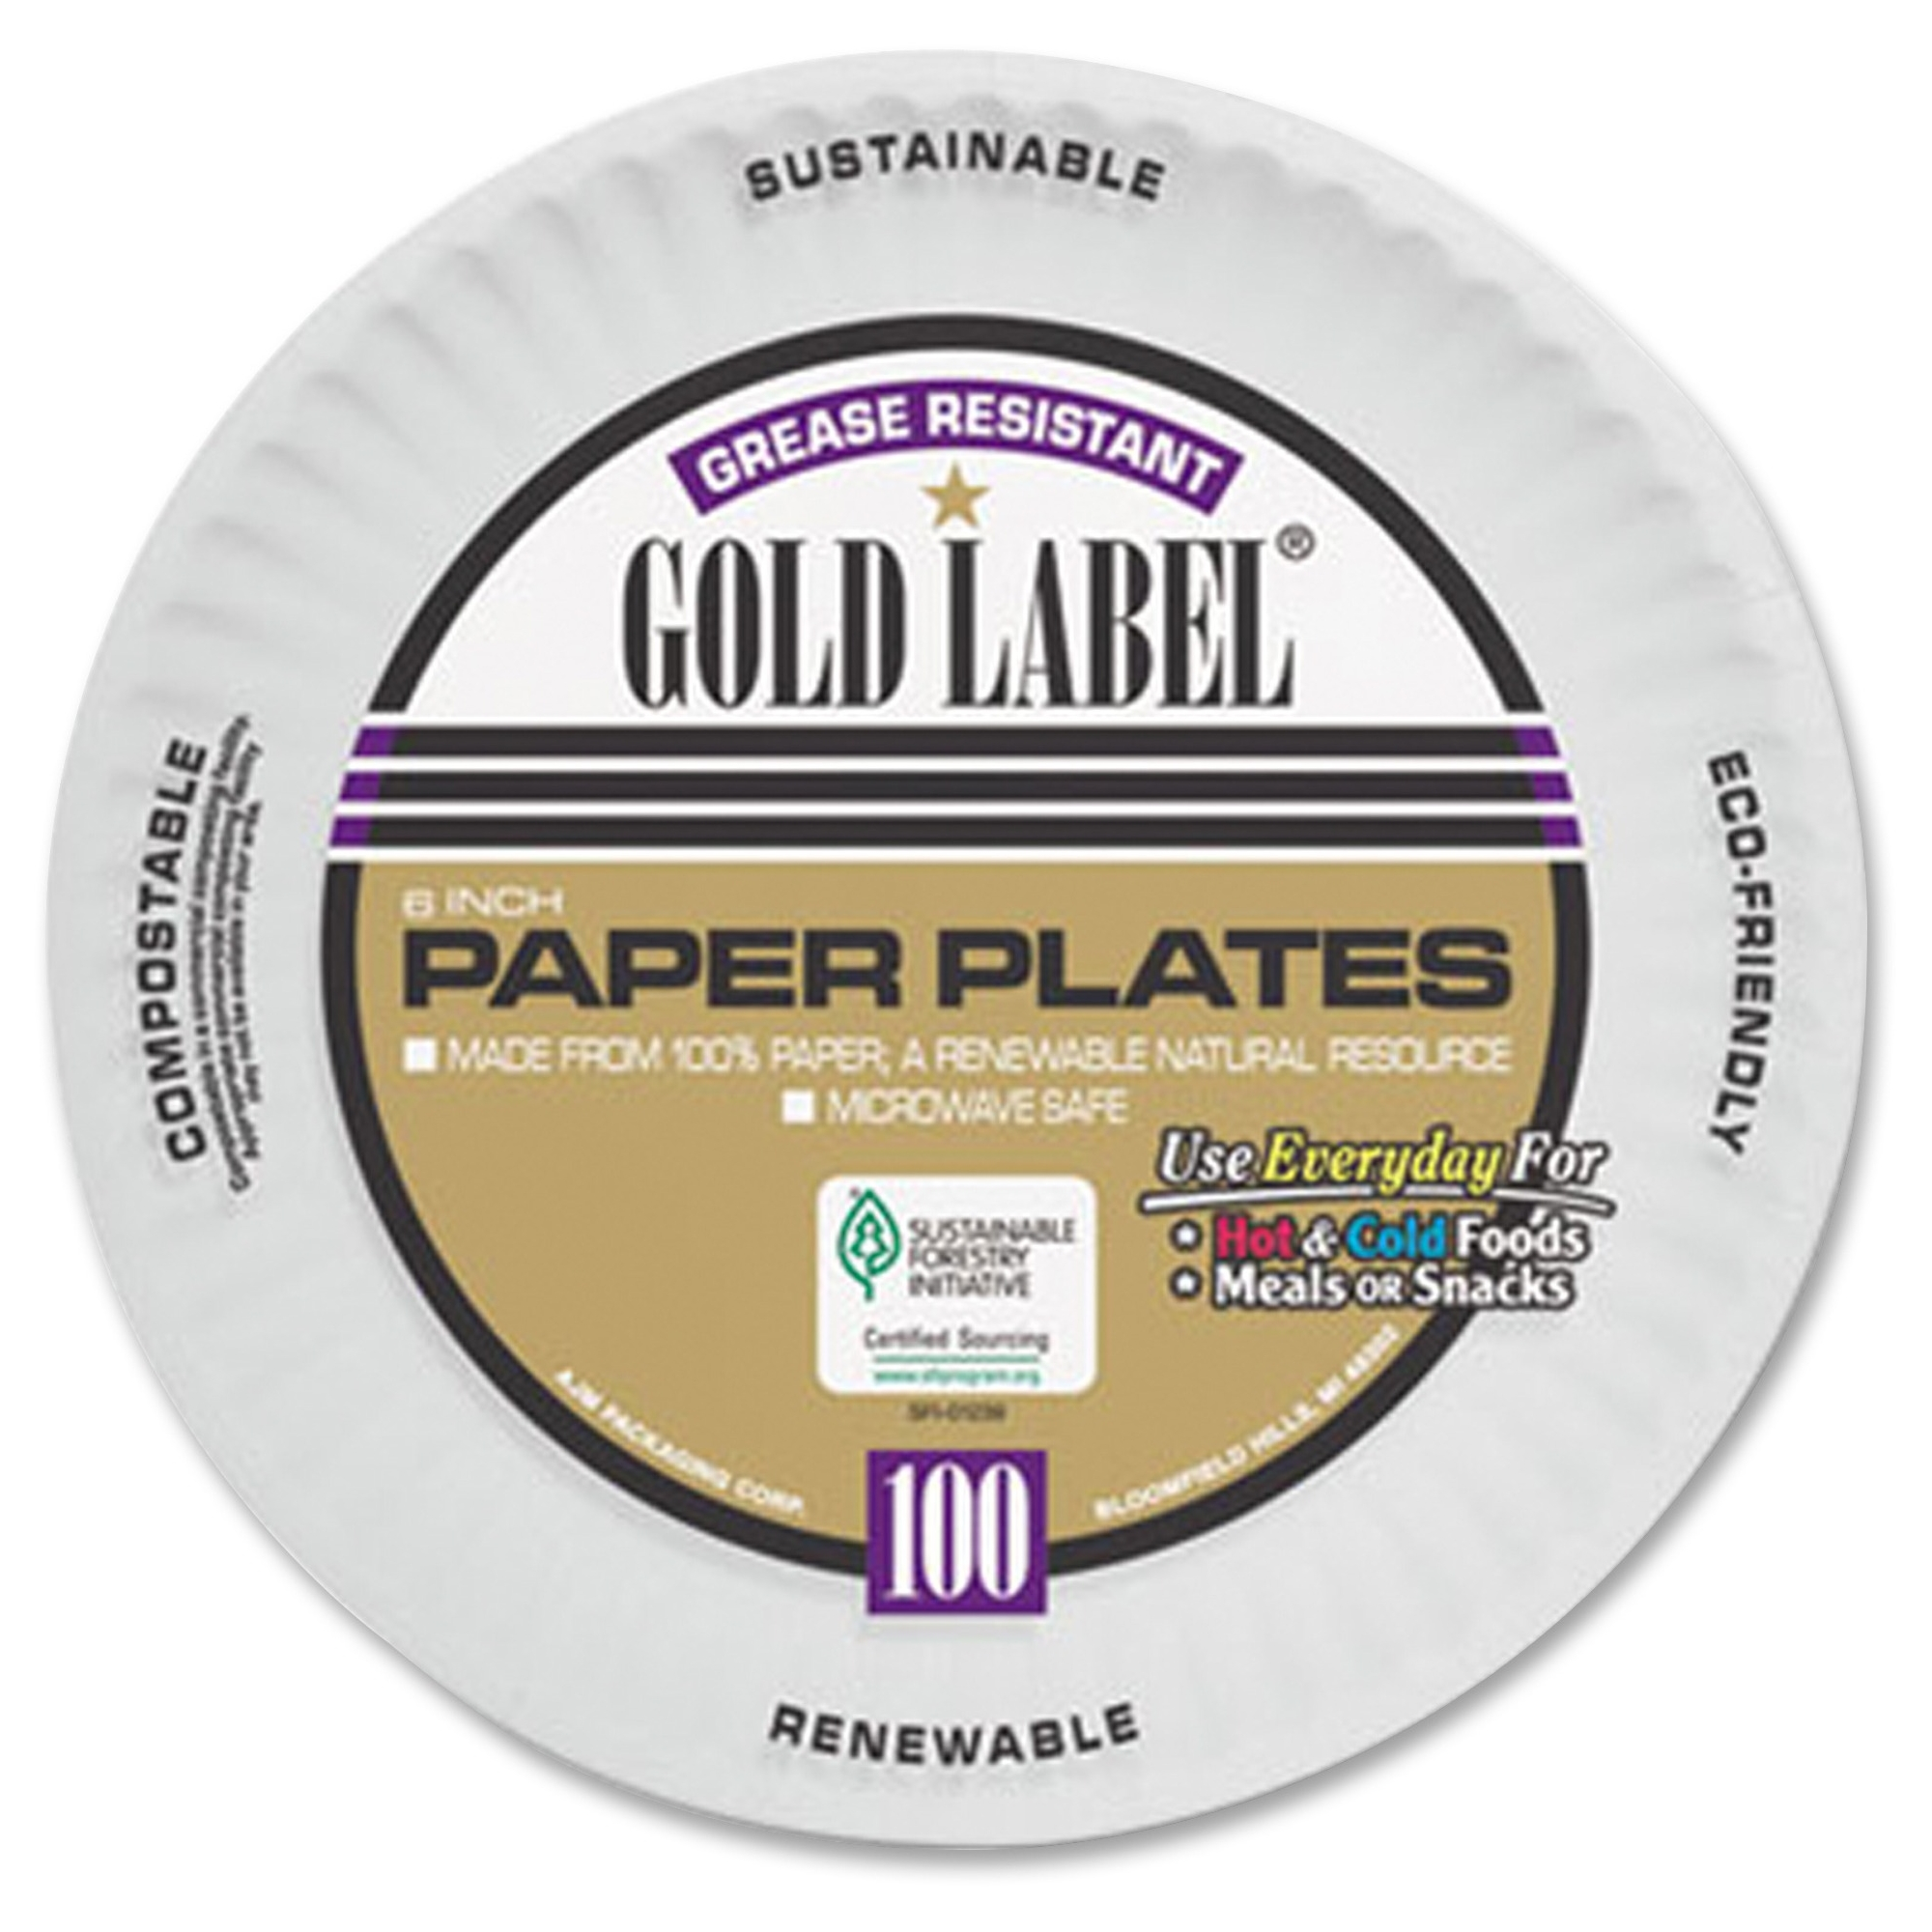 Solo CP6OAWH Coated Paper Plates 6 Inches White Round 100/pack - Walmart.com  sc 1 st  Walmart.com & Solo CP6OAWH Coated Paper Plates 6 Inches White Round 100/pack ...